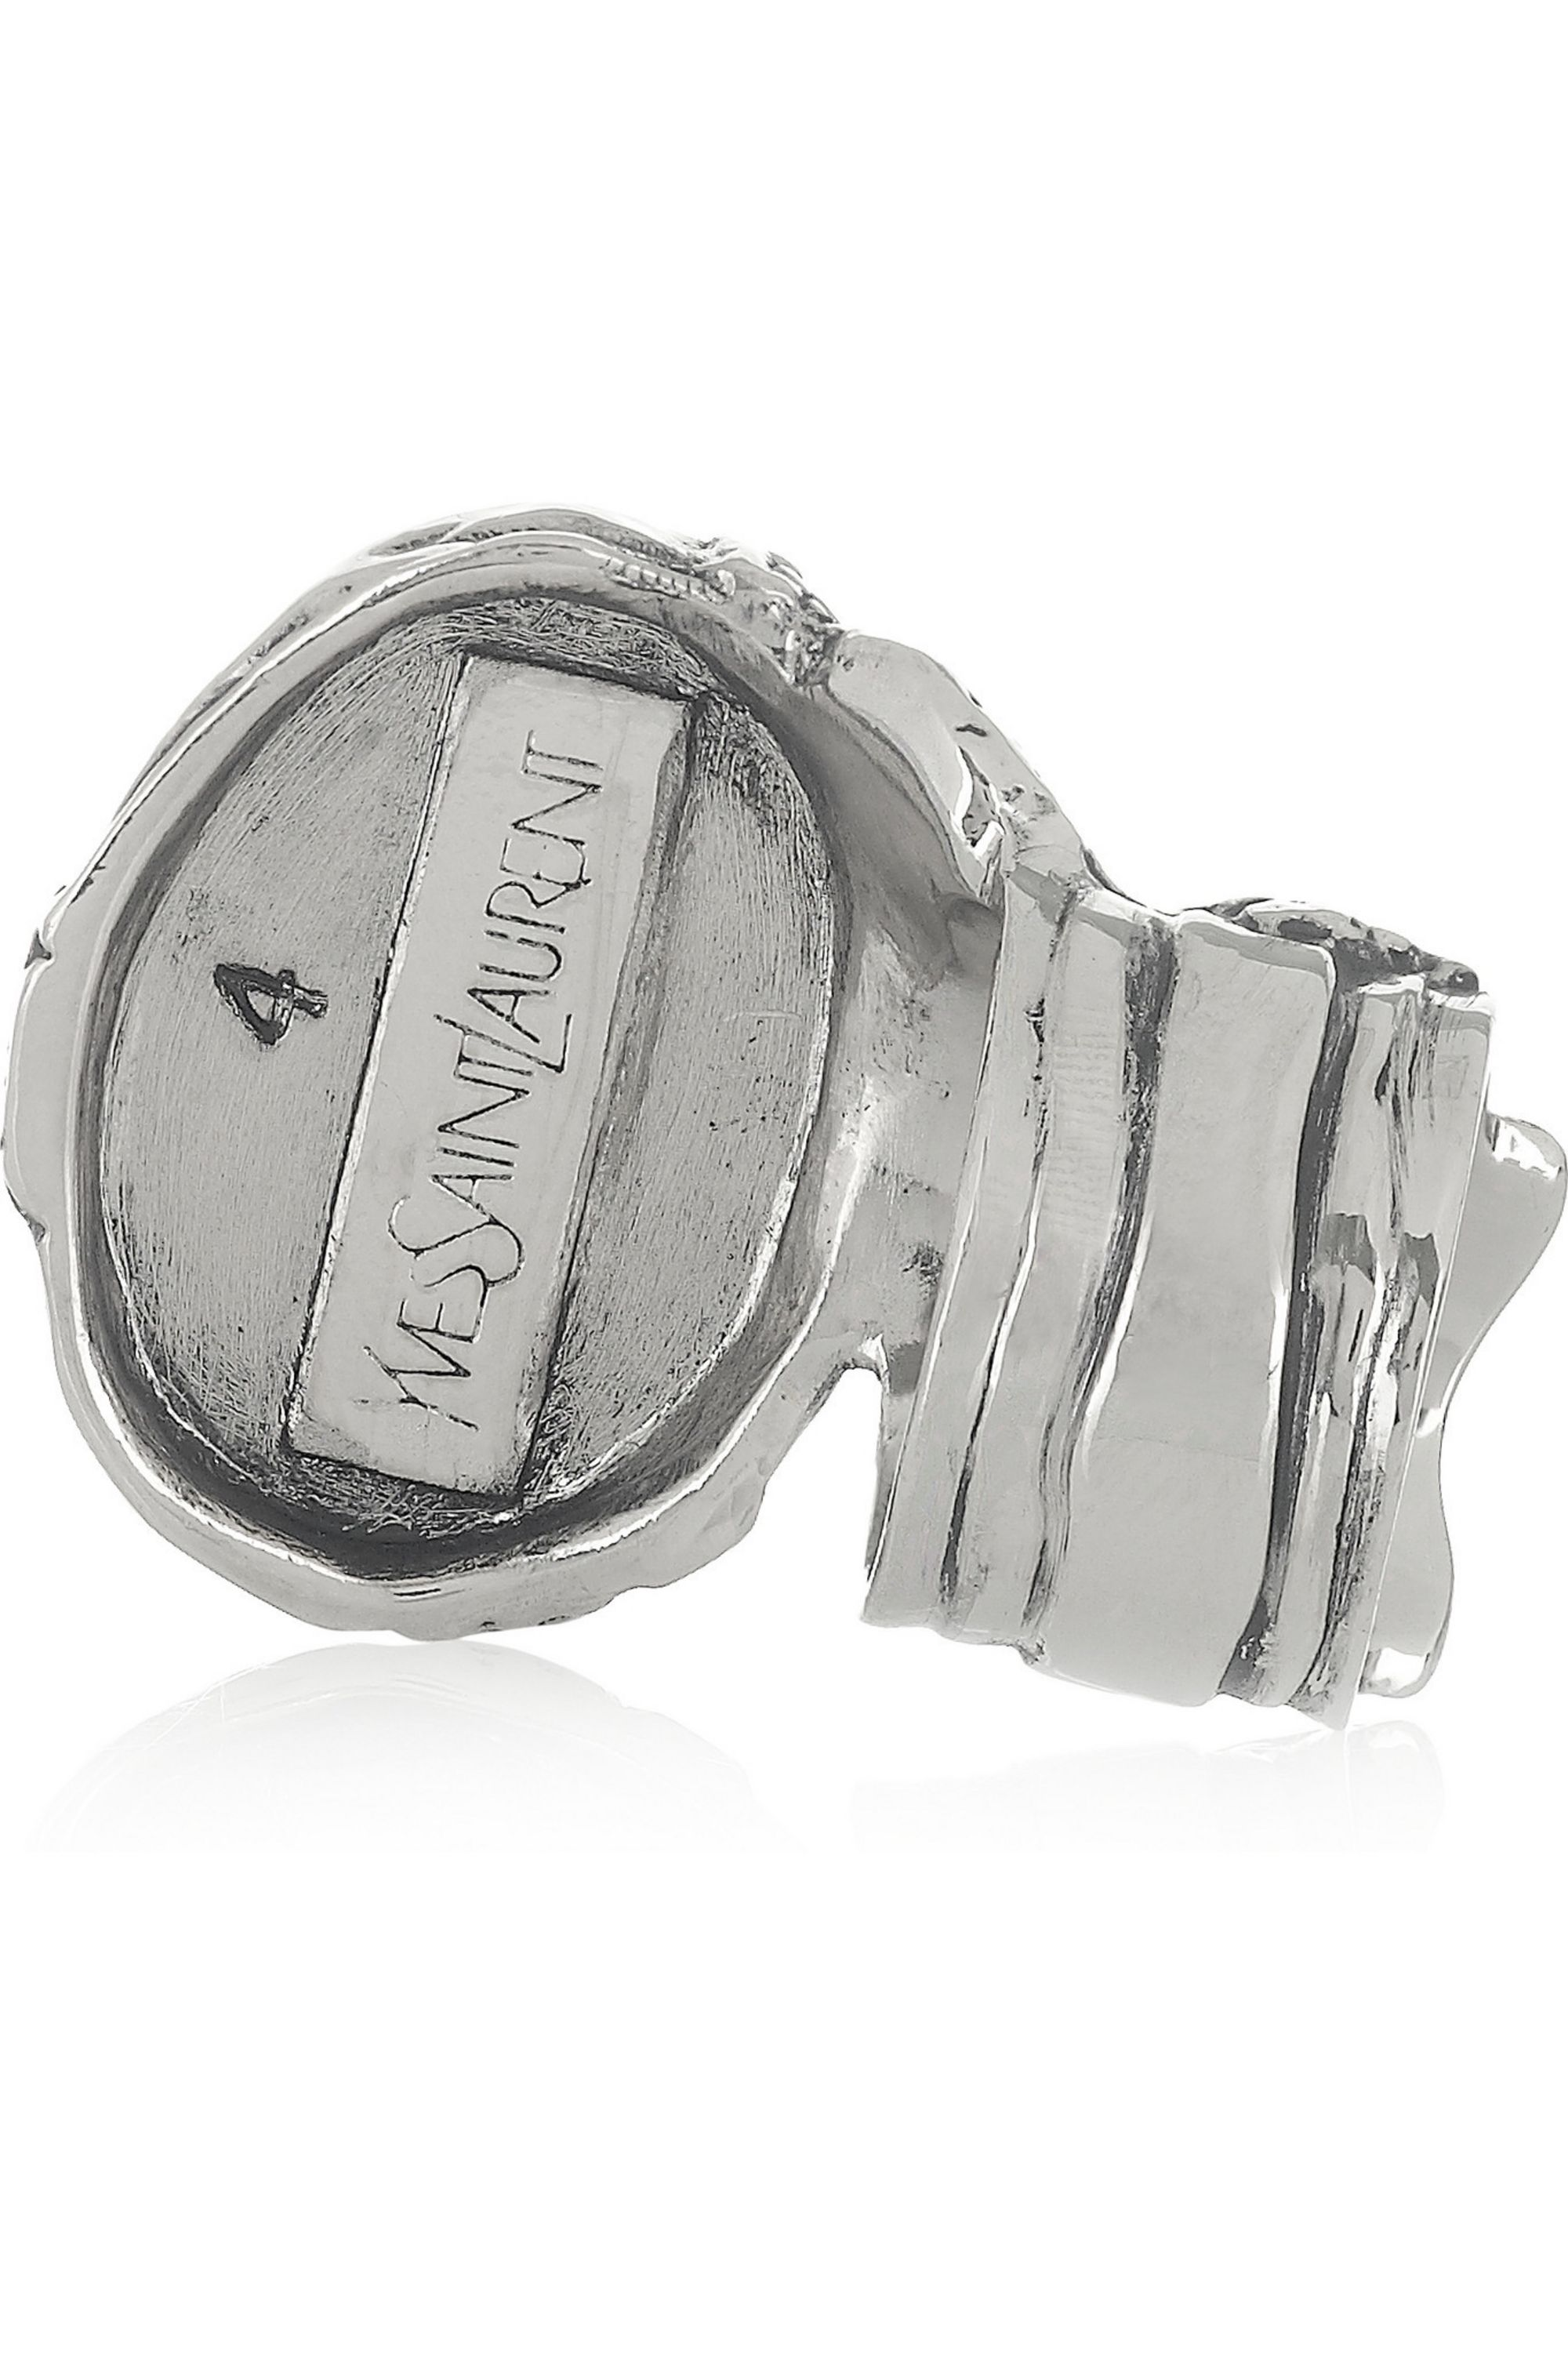 Yves Saint Laurent Arty silver-plated glass ring